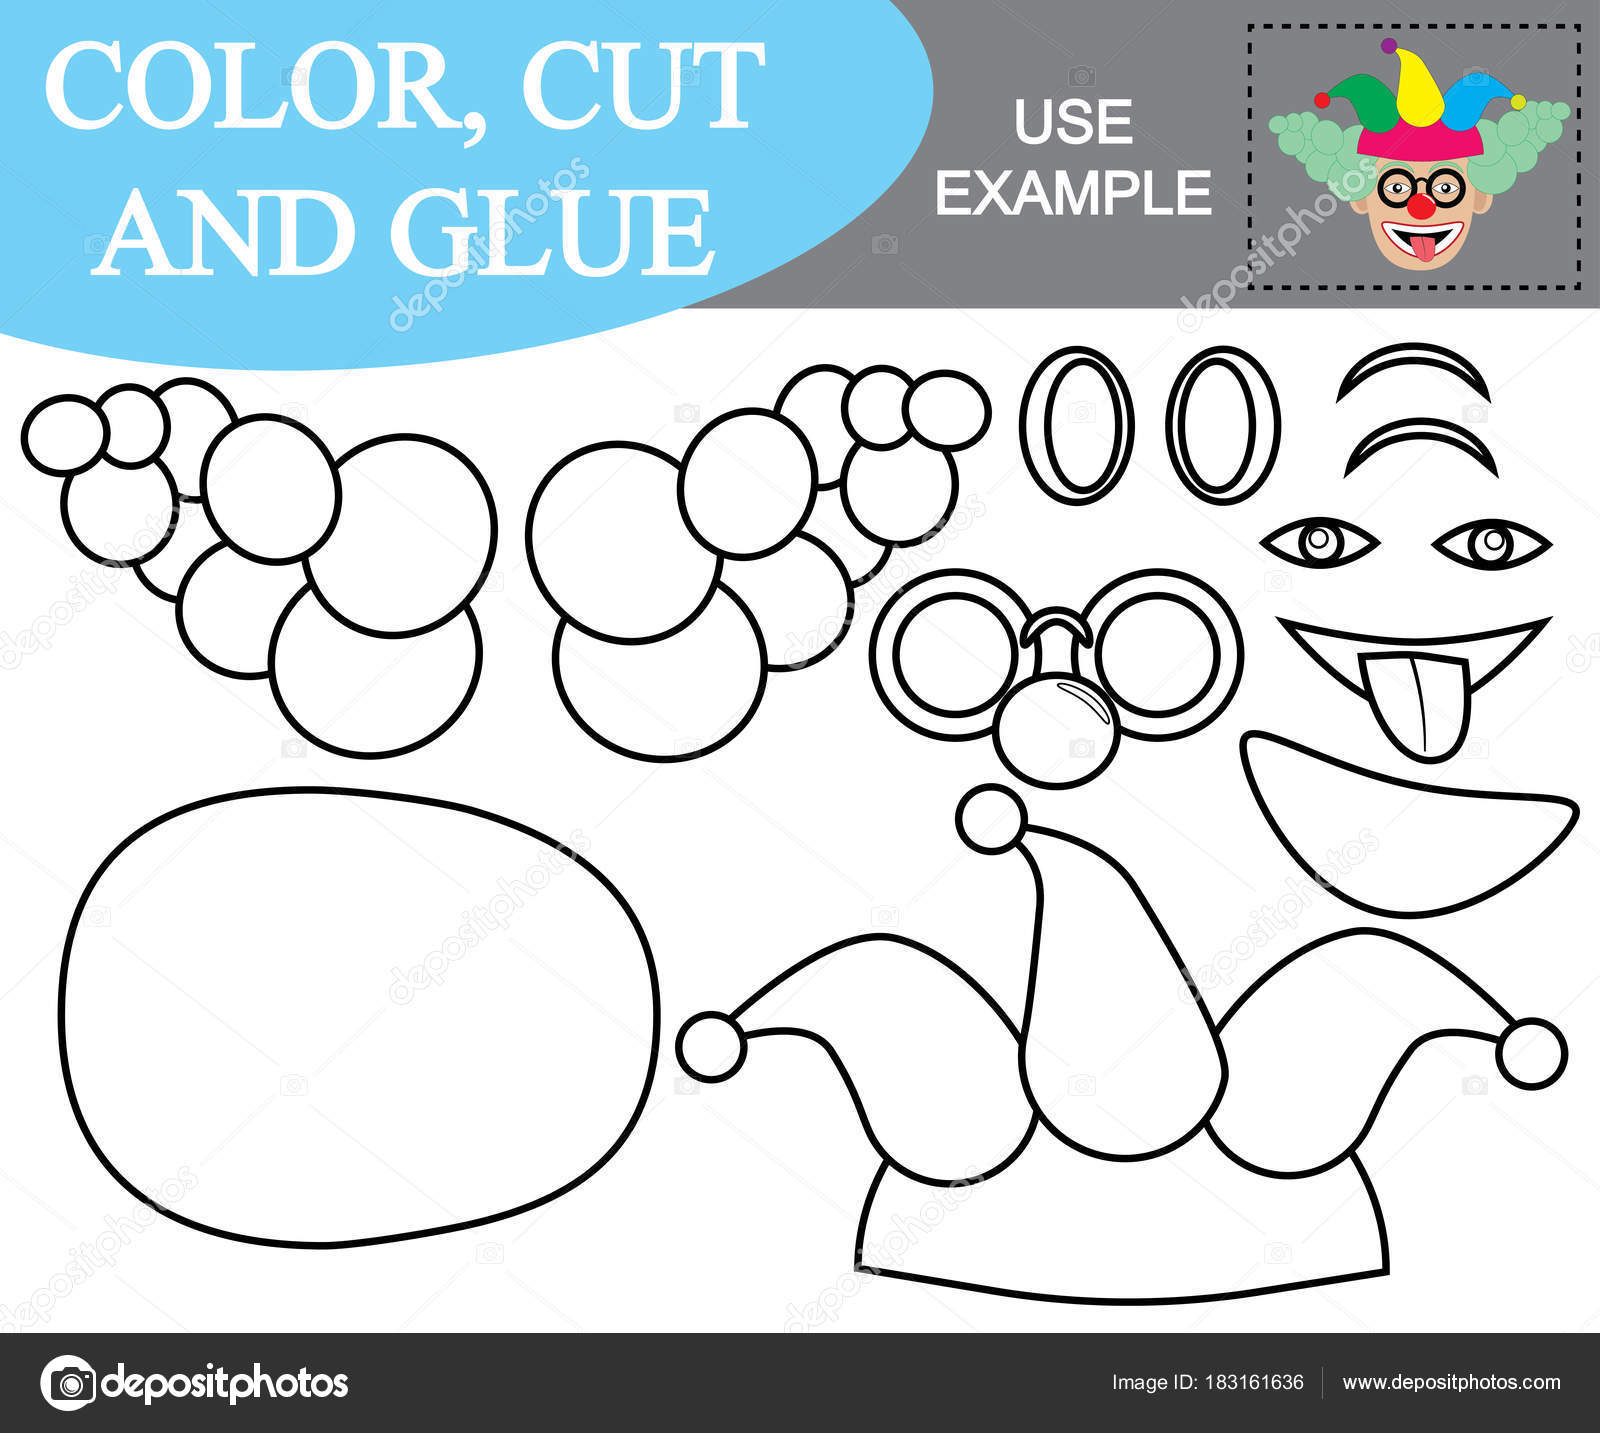 Paint Cut And Paste The Image Of Face Of Clown Game For Children